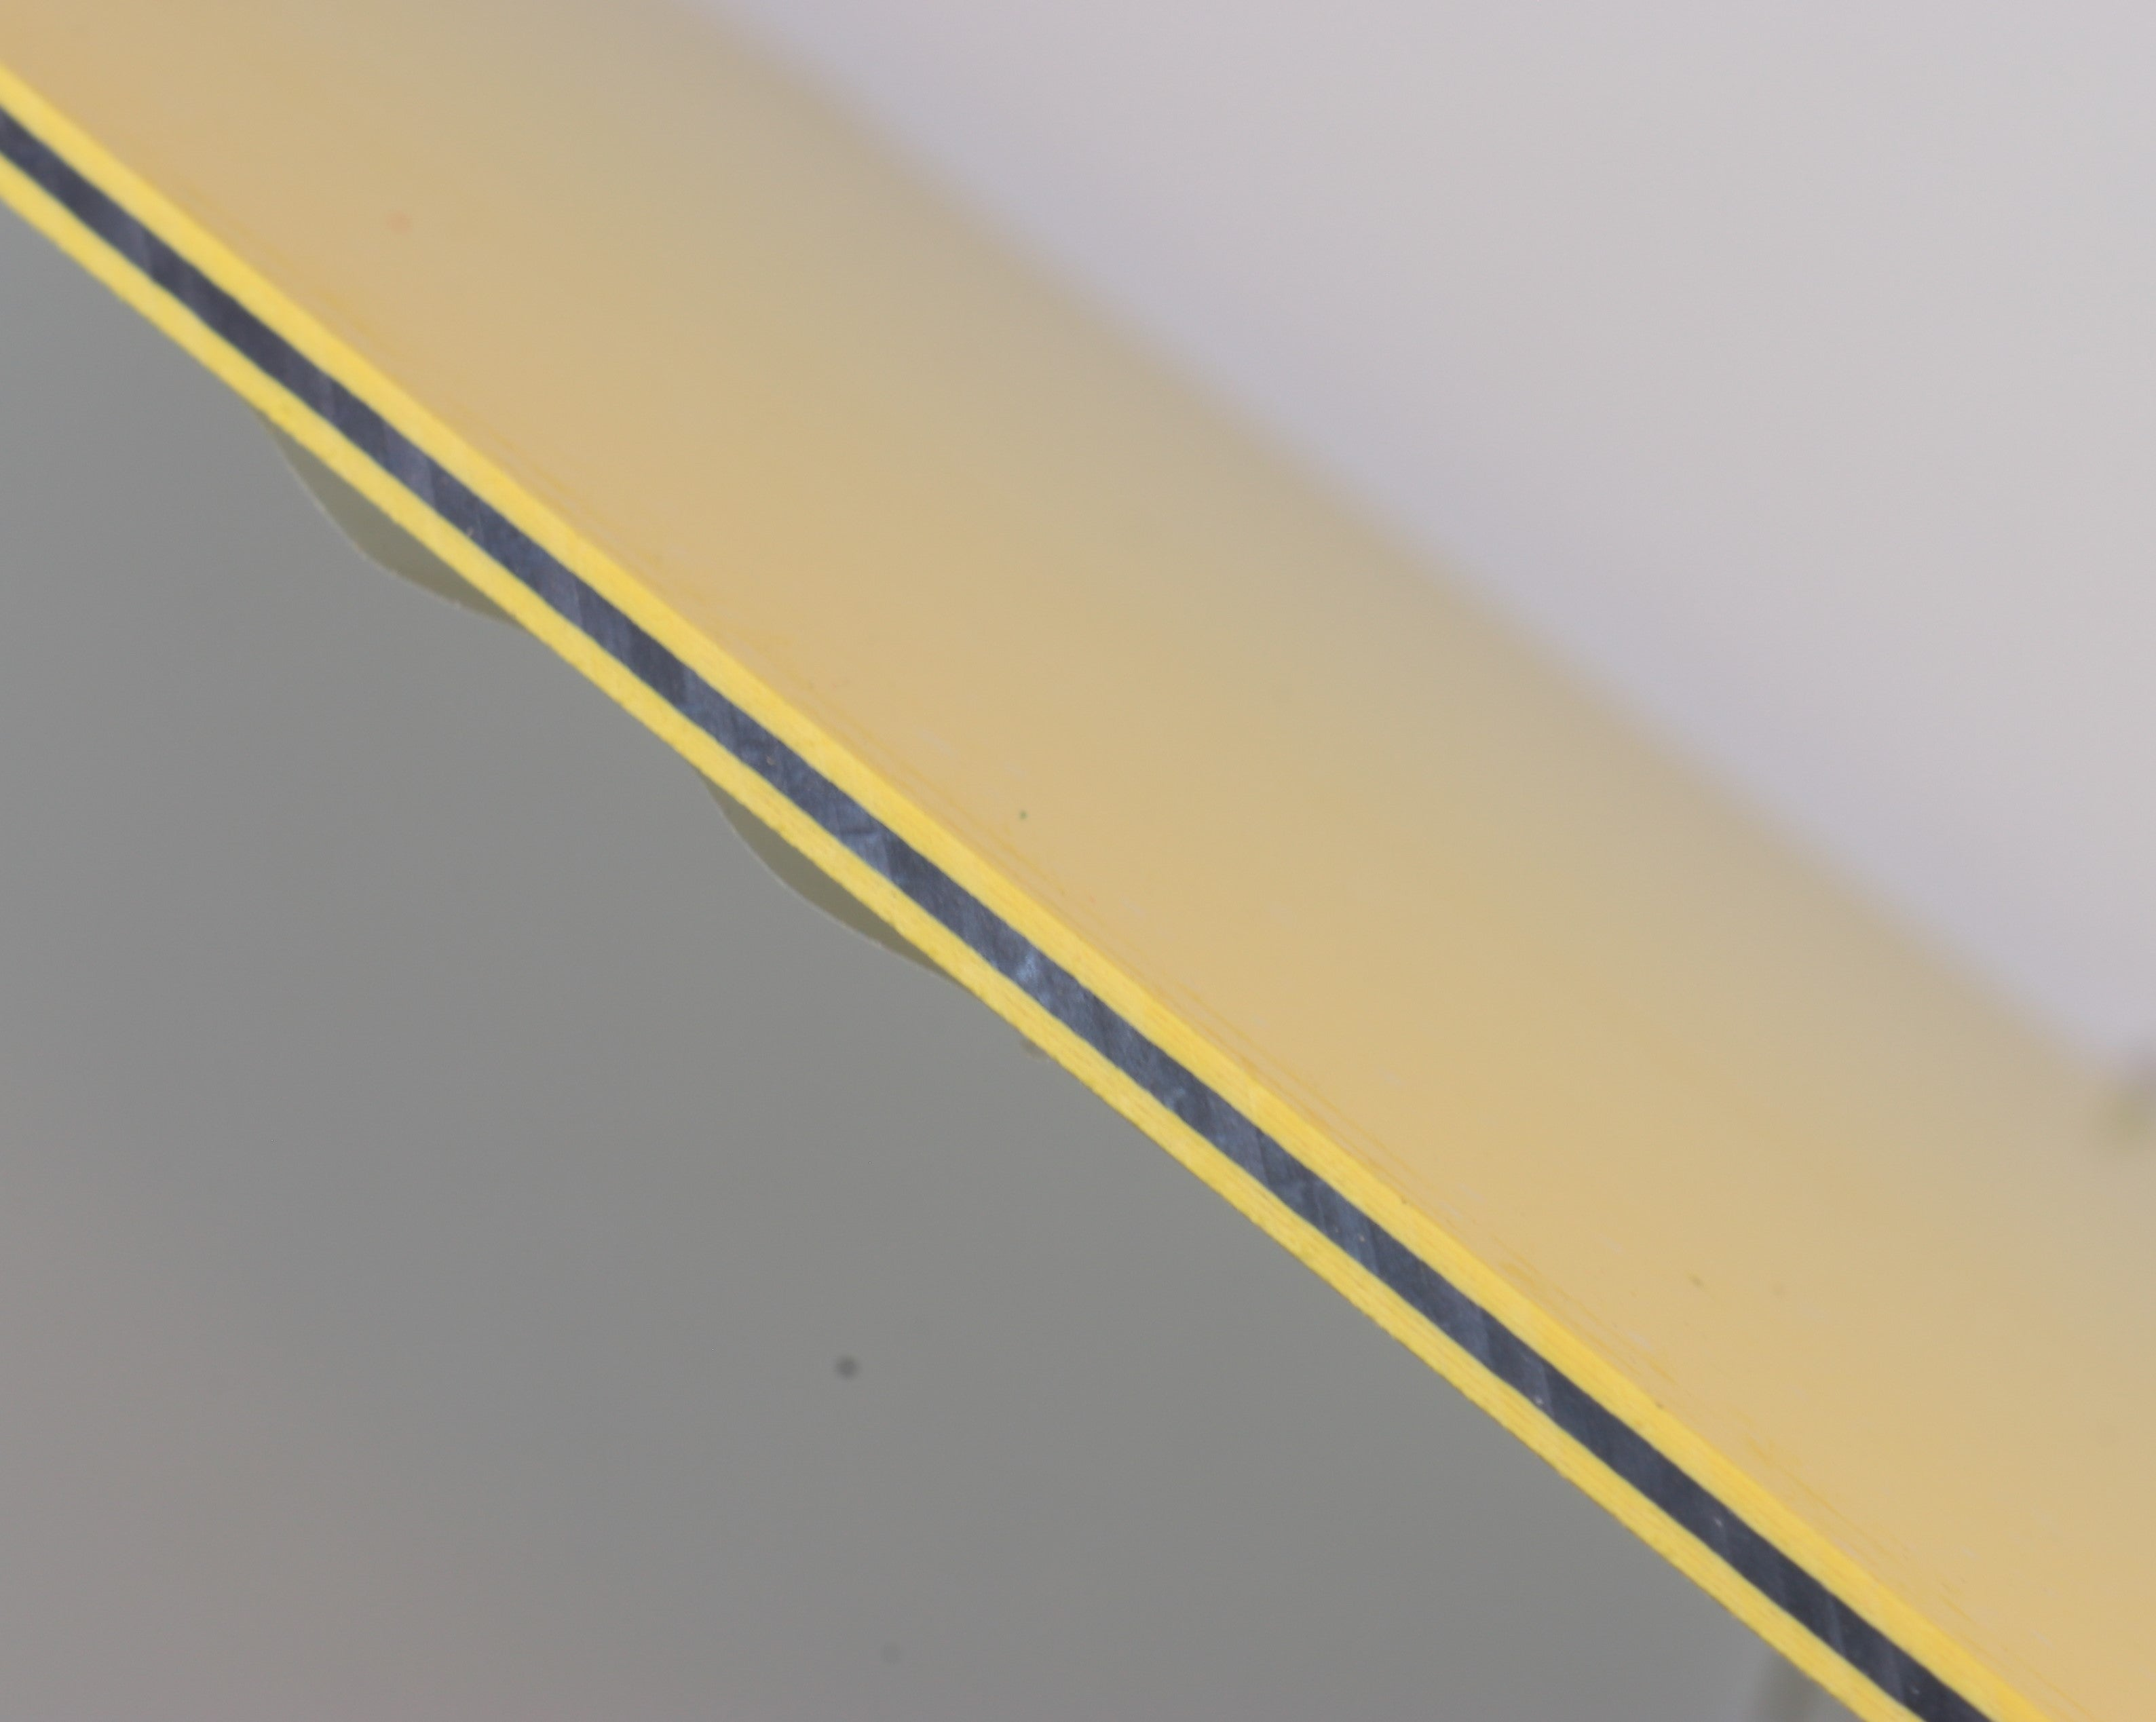 3 LAYER SPACER YELLOW-BLACK-YELLOW .100 X 6 X 12